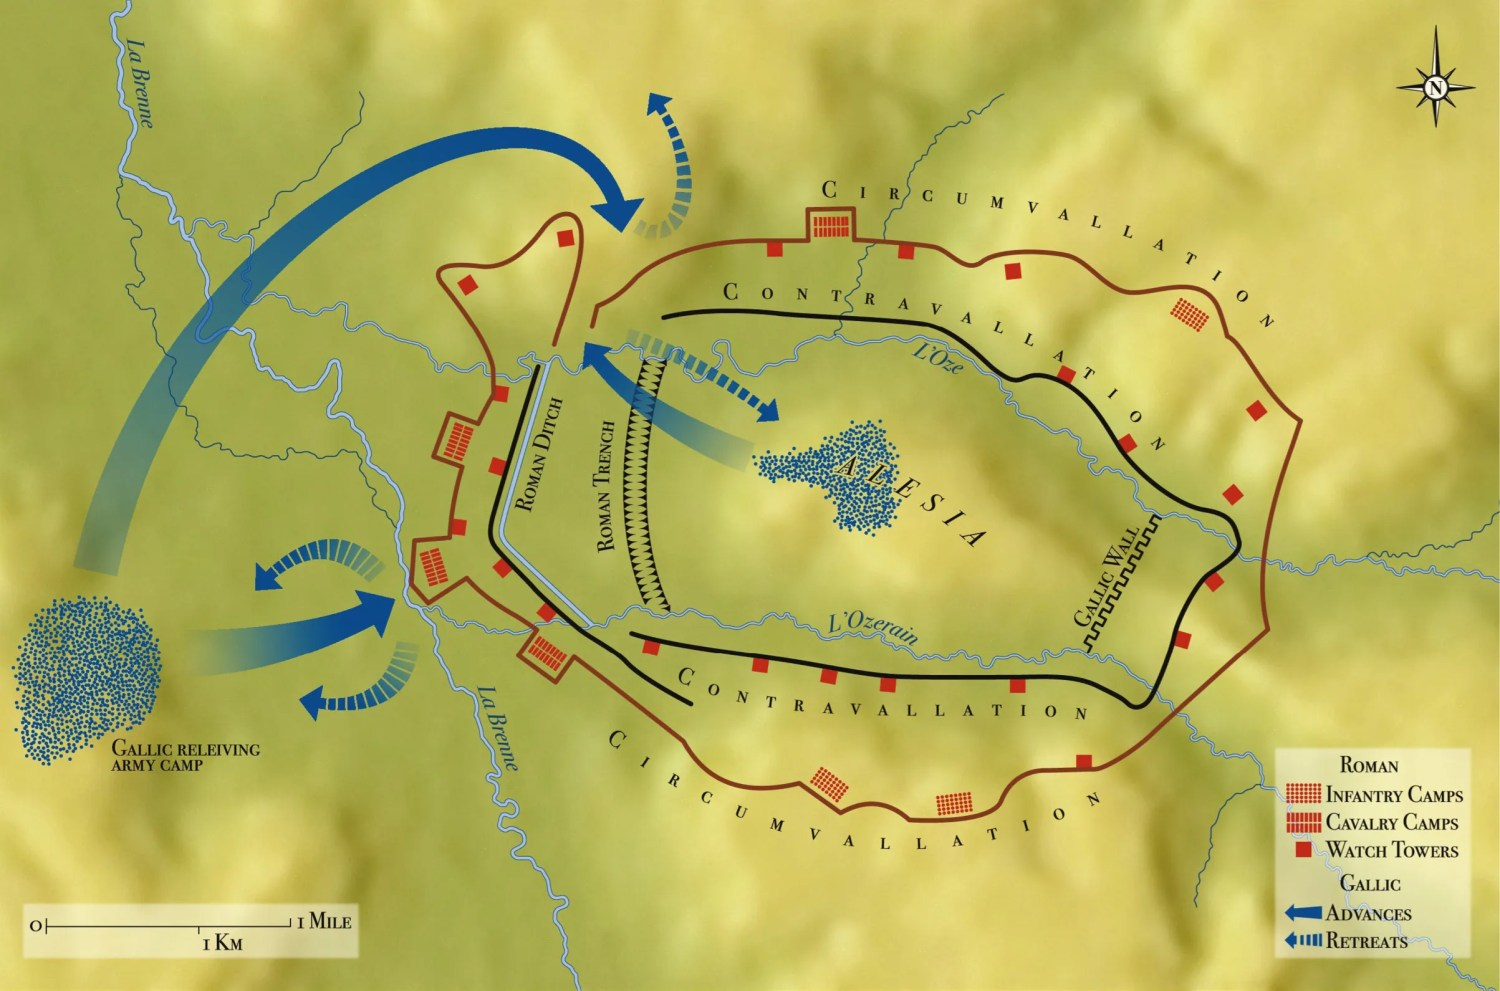 Above Plan of the Siege of Alesia, 52 BC, showing the principal Gaulish manoeuvres in the final battle.